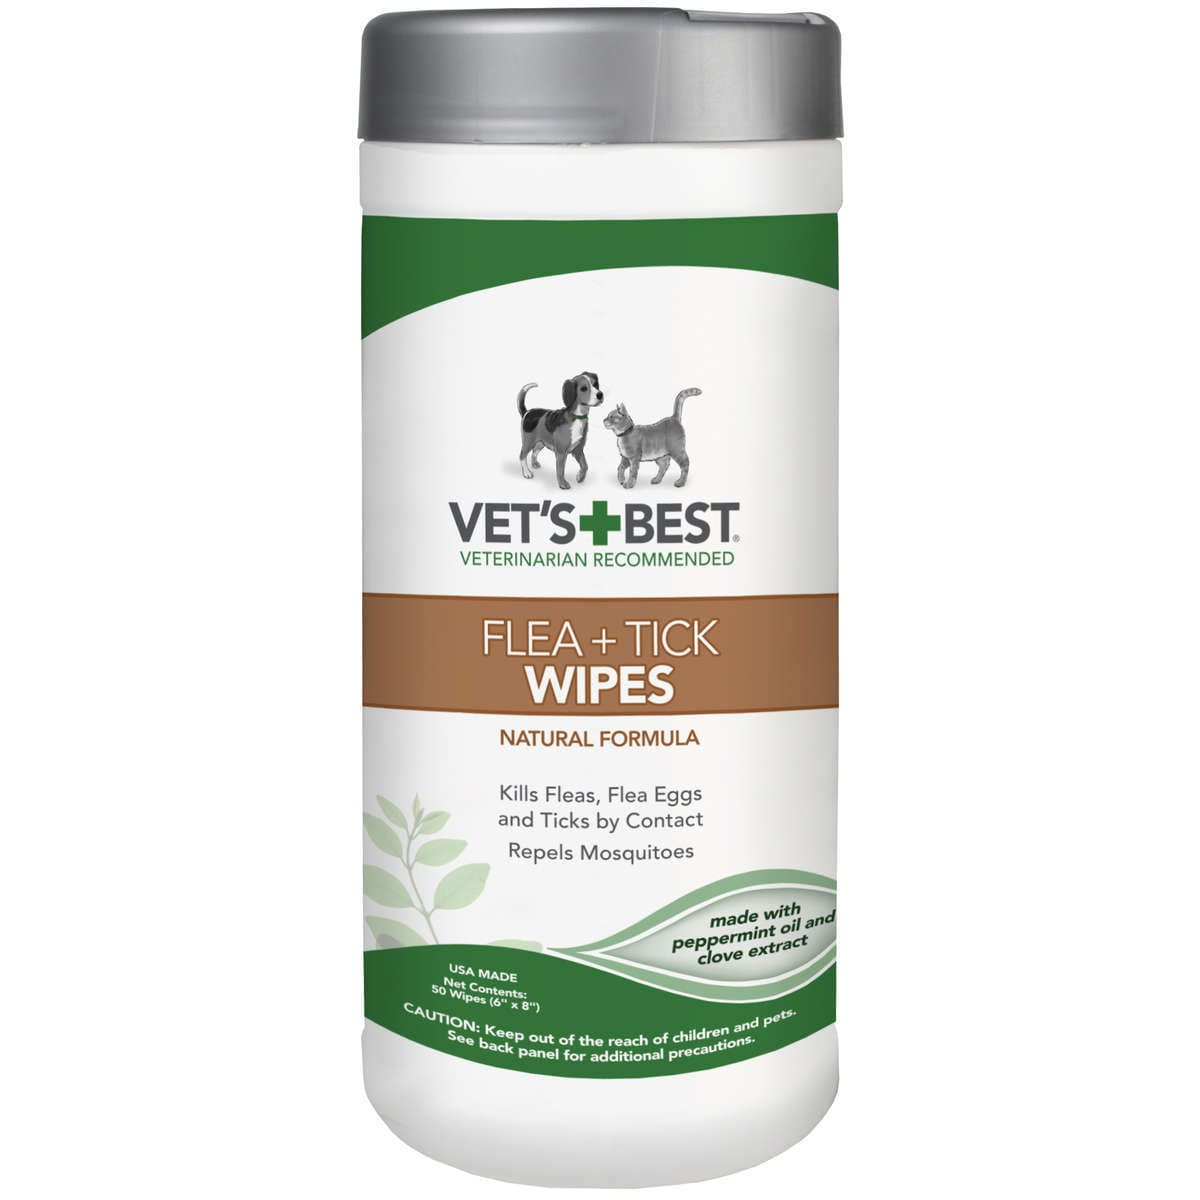 Vet's Best Dog Flea and Tick Wipes (50 count), Grey